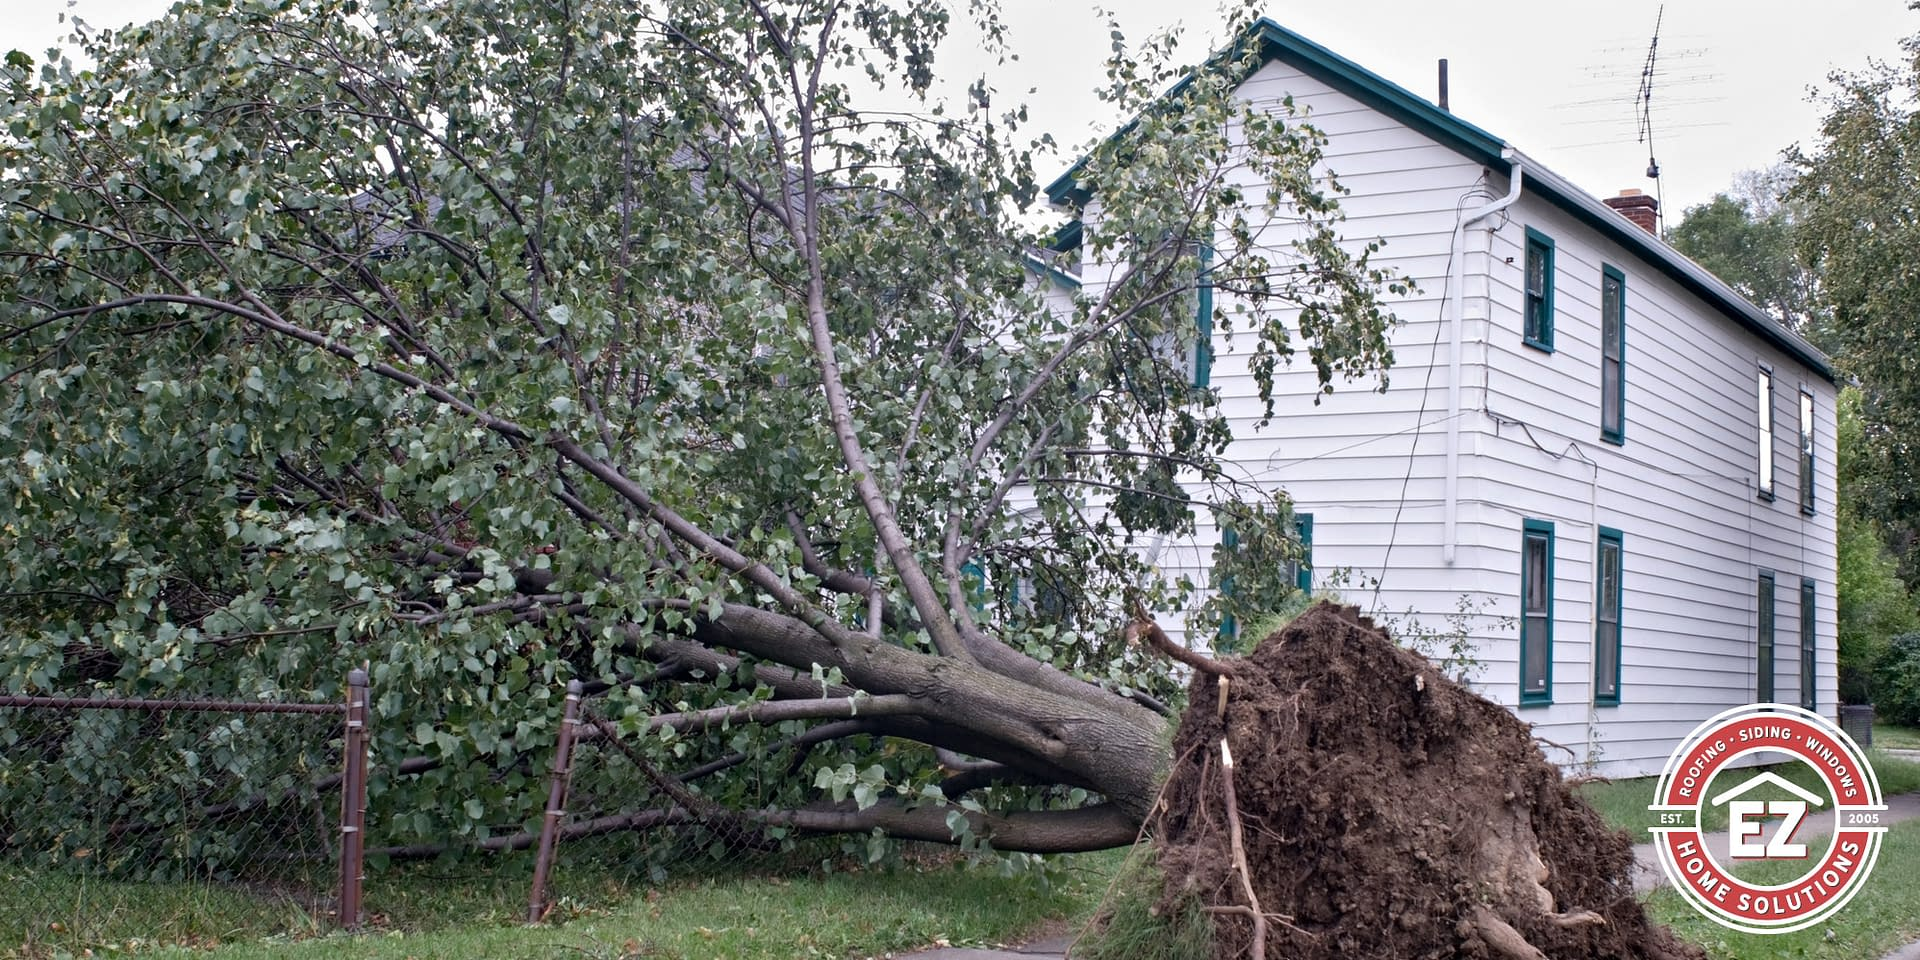 Storm Damage Insurance Claims: What to Expect